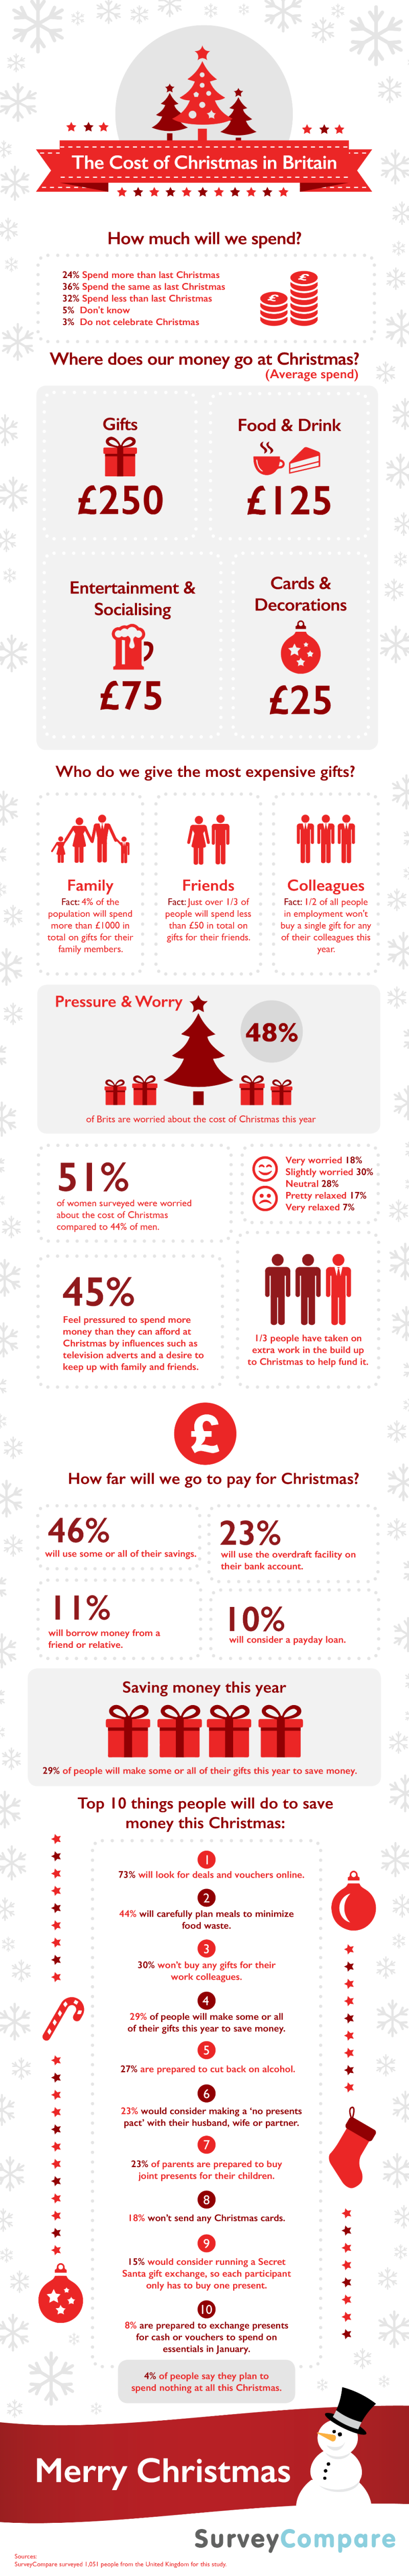 The Cost of Christmas in Britain